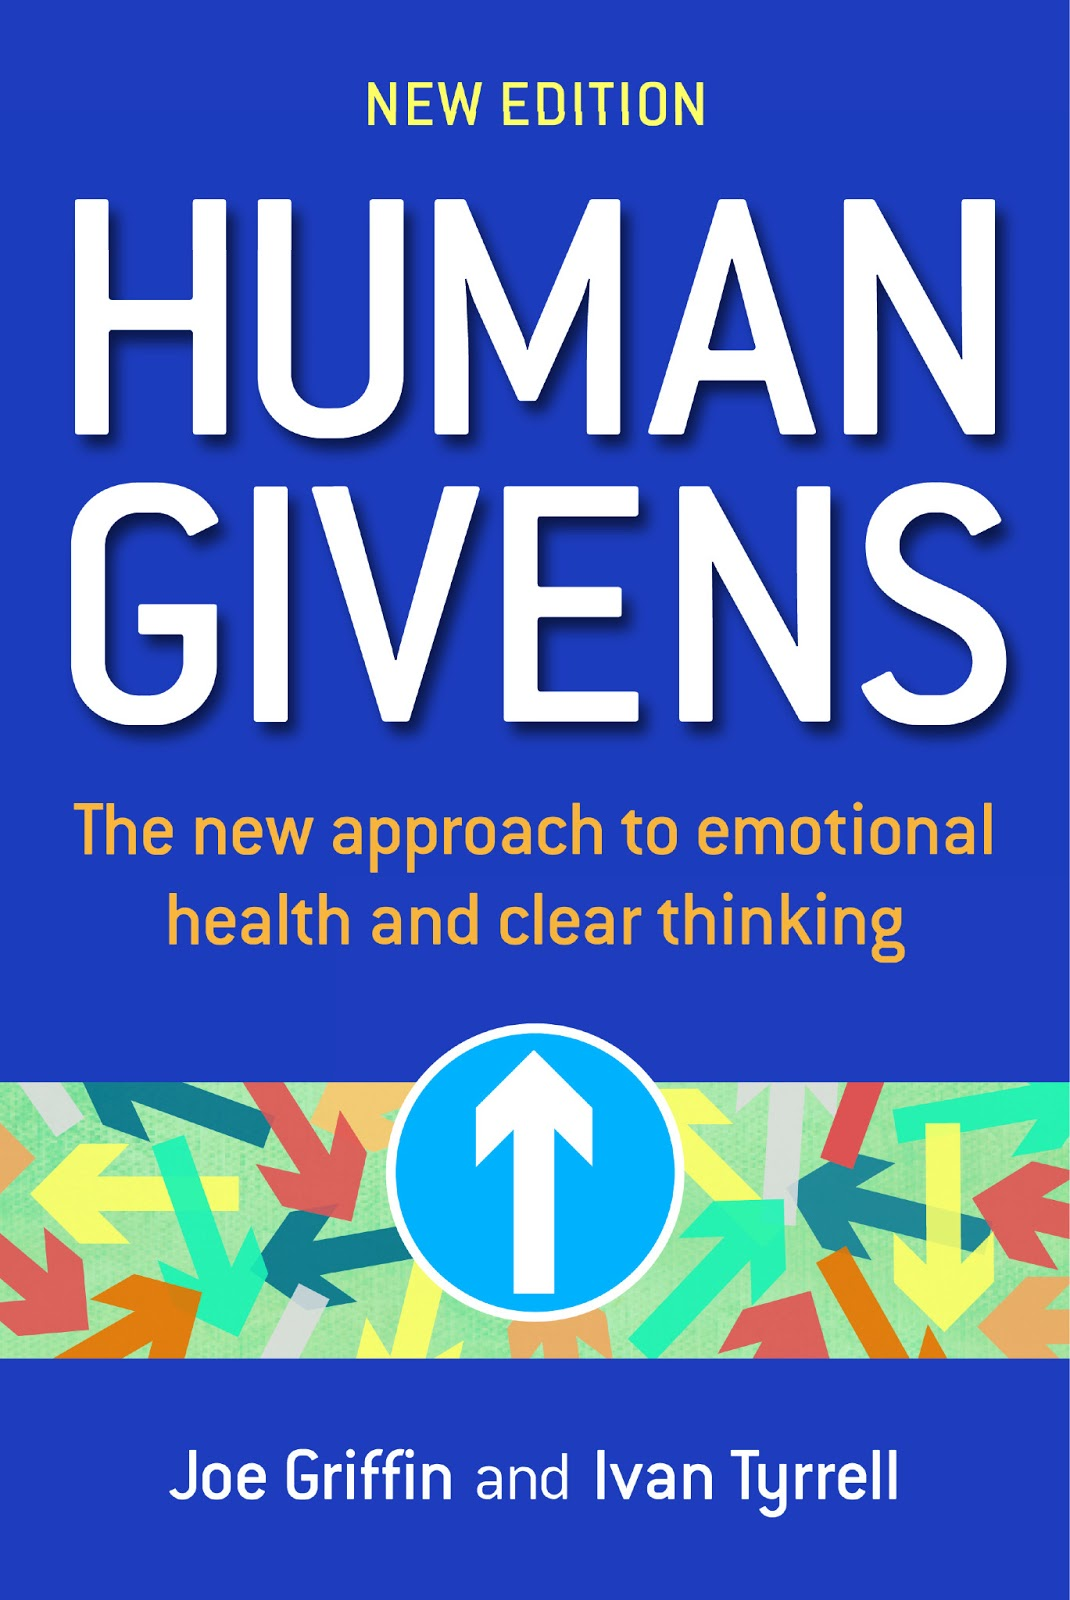 http://www.humangivens.com/publications/human-givens-book.html